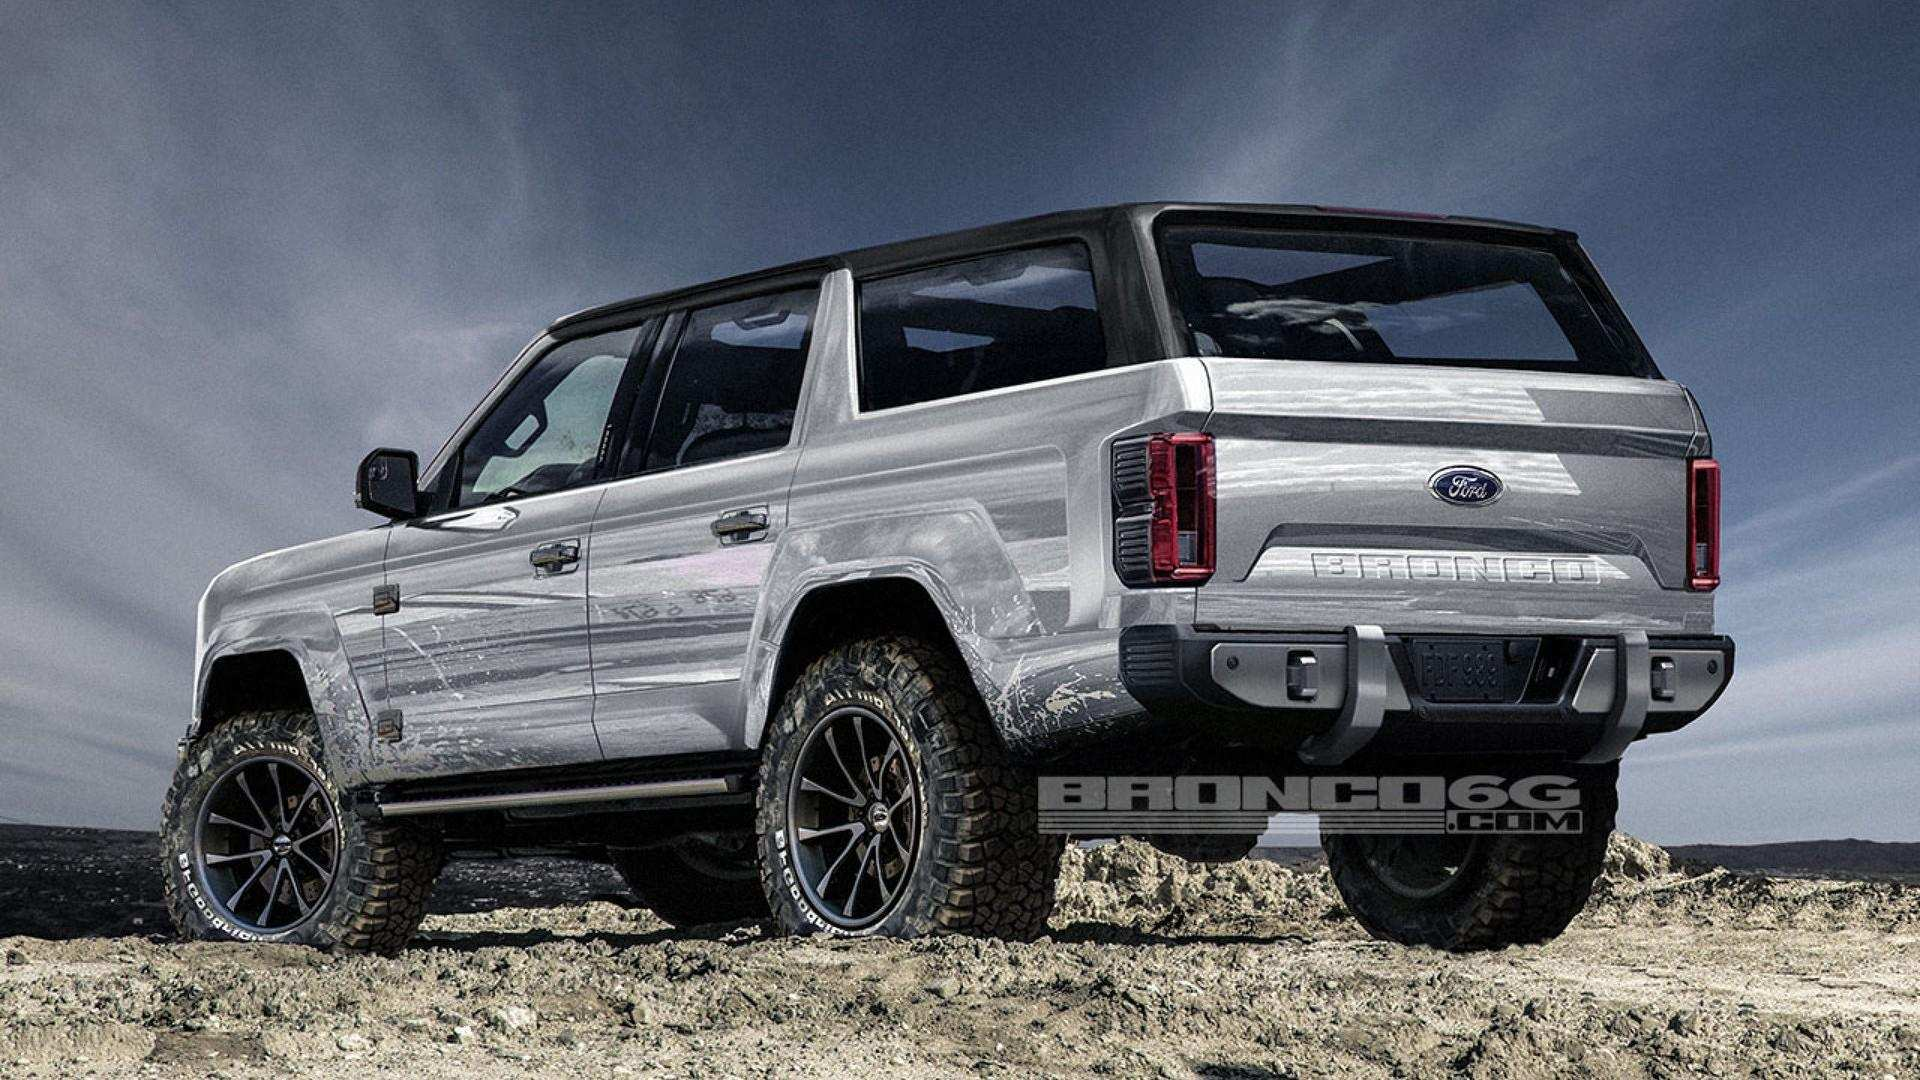 89 The 2020 Ford Bronco 6G Research New by 2020 Ford Bronco 6G